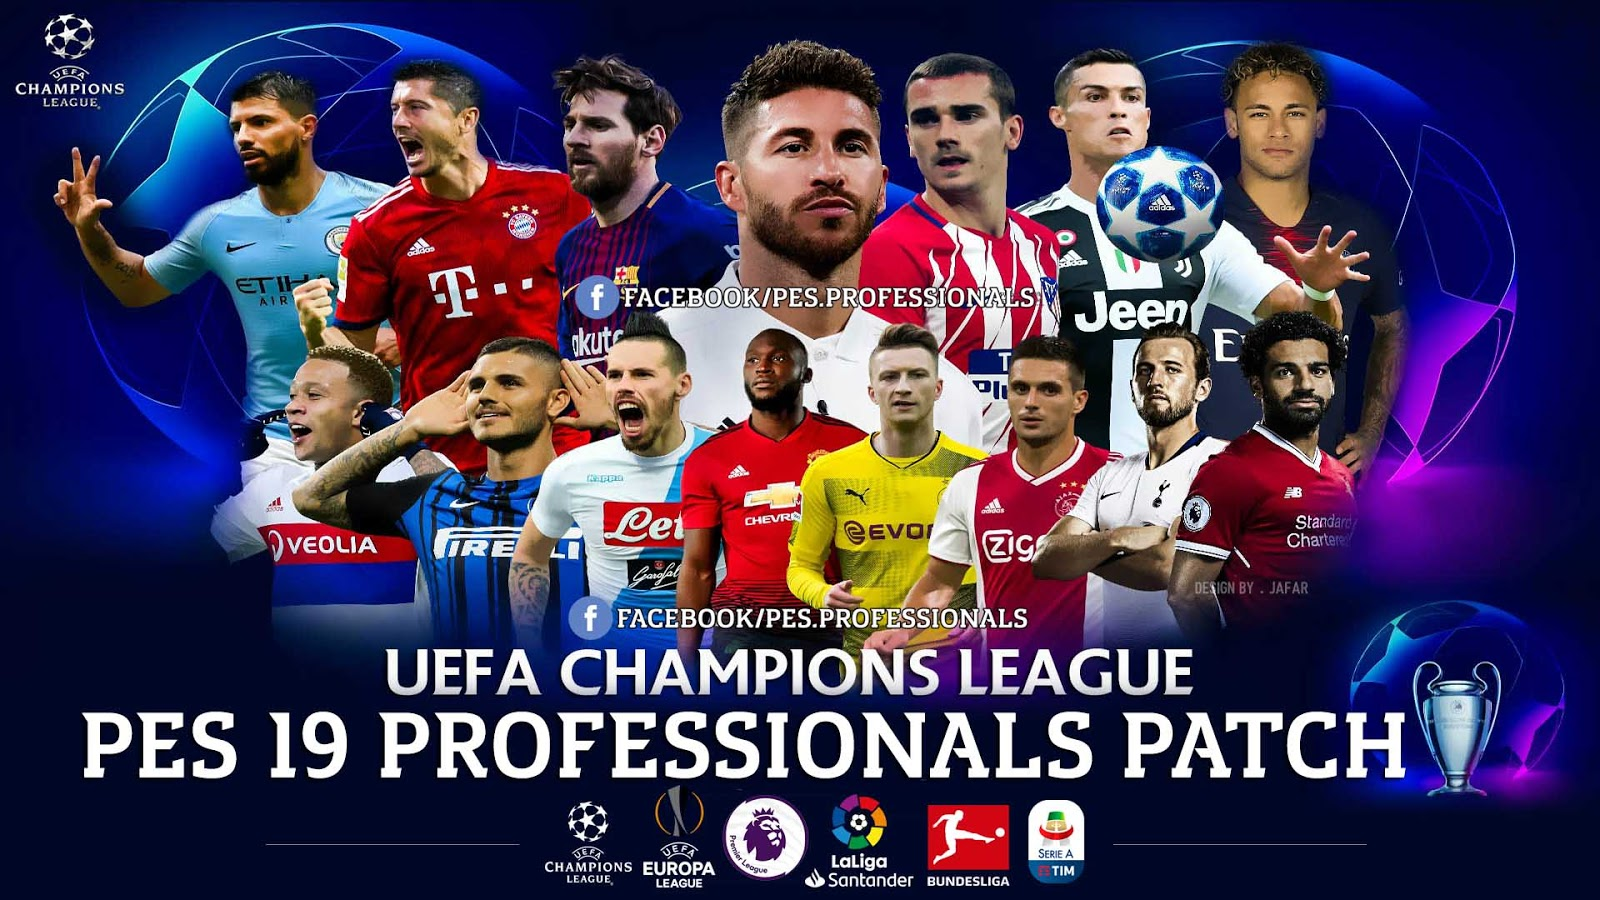 PES 2019 Professionals Patch V1 - Released 10/12/2018